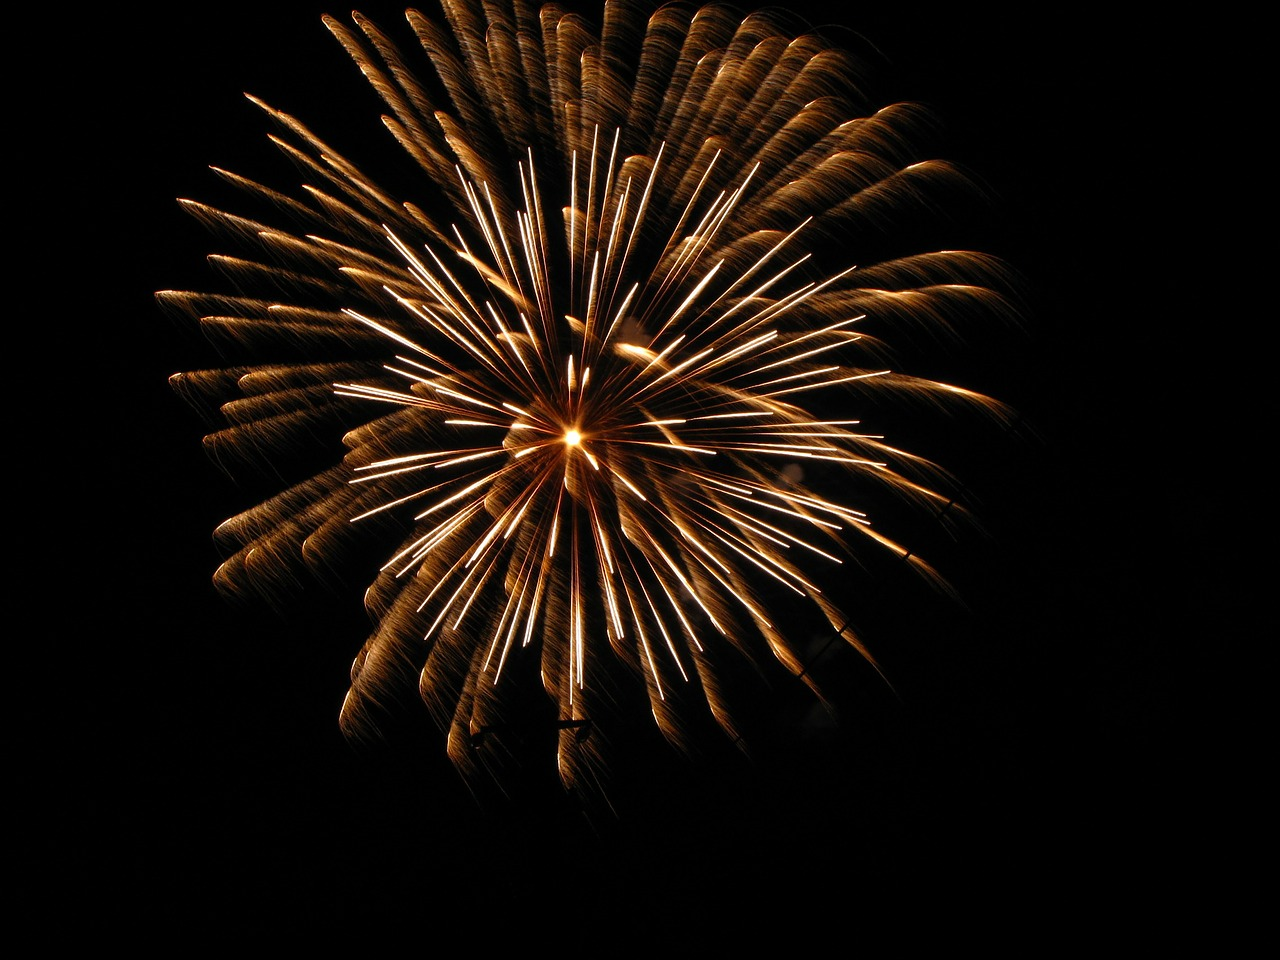 fires artifice fireworks free photo